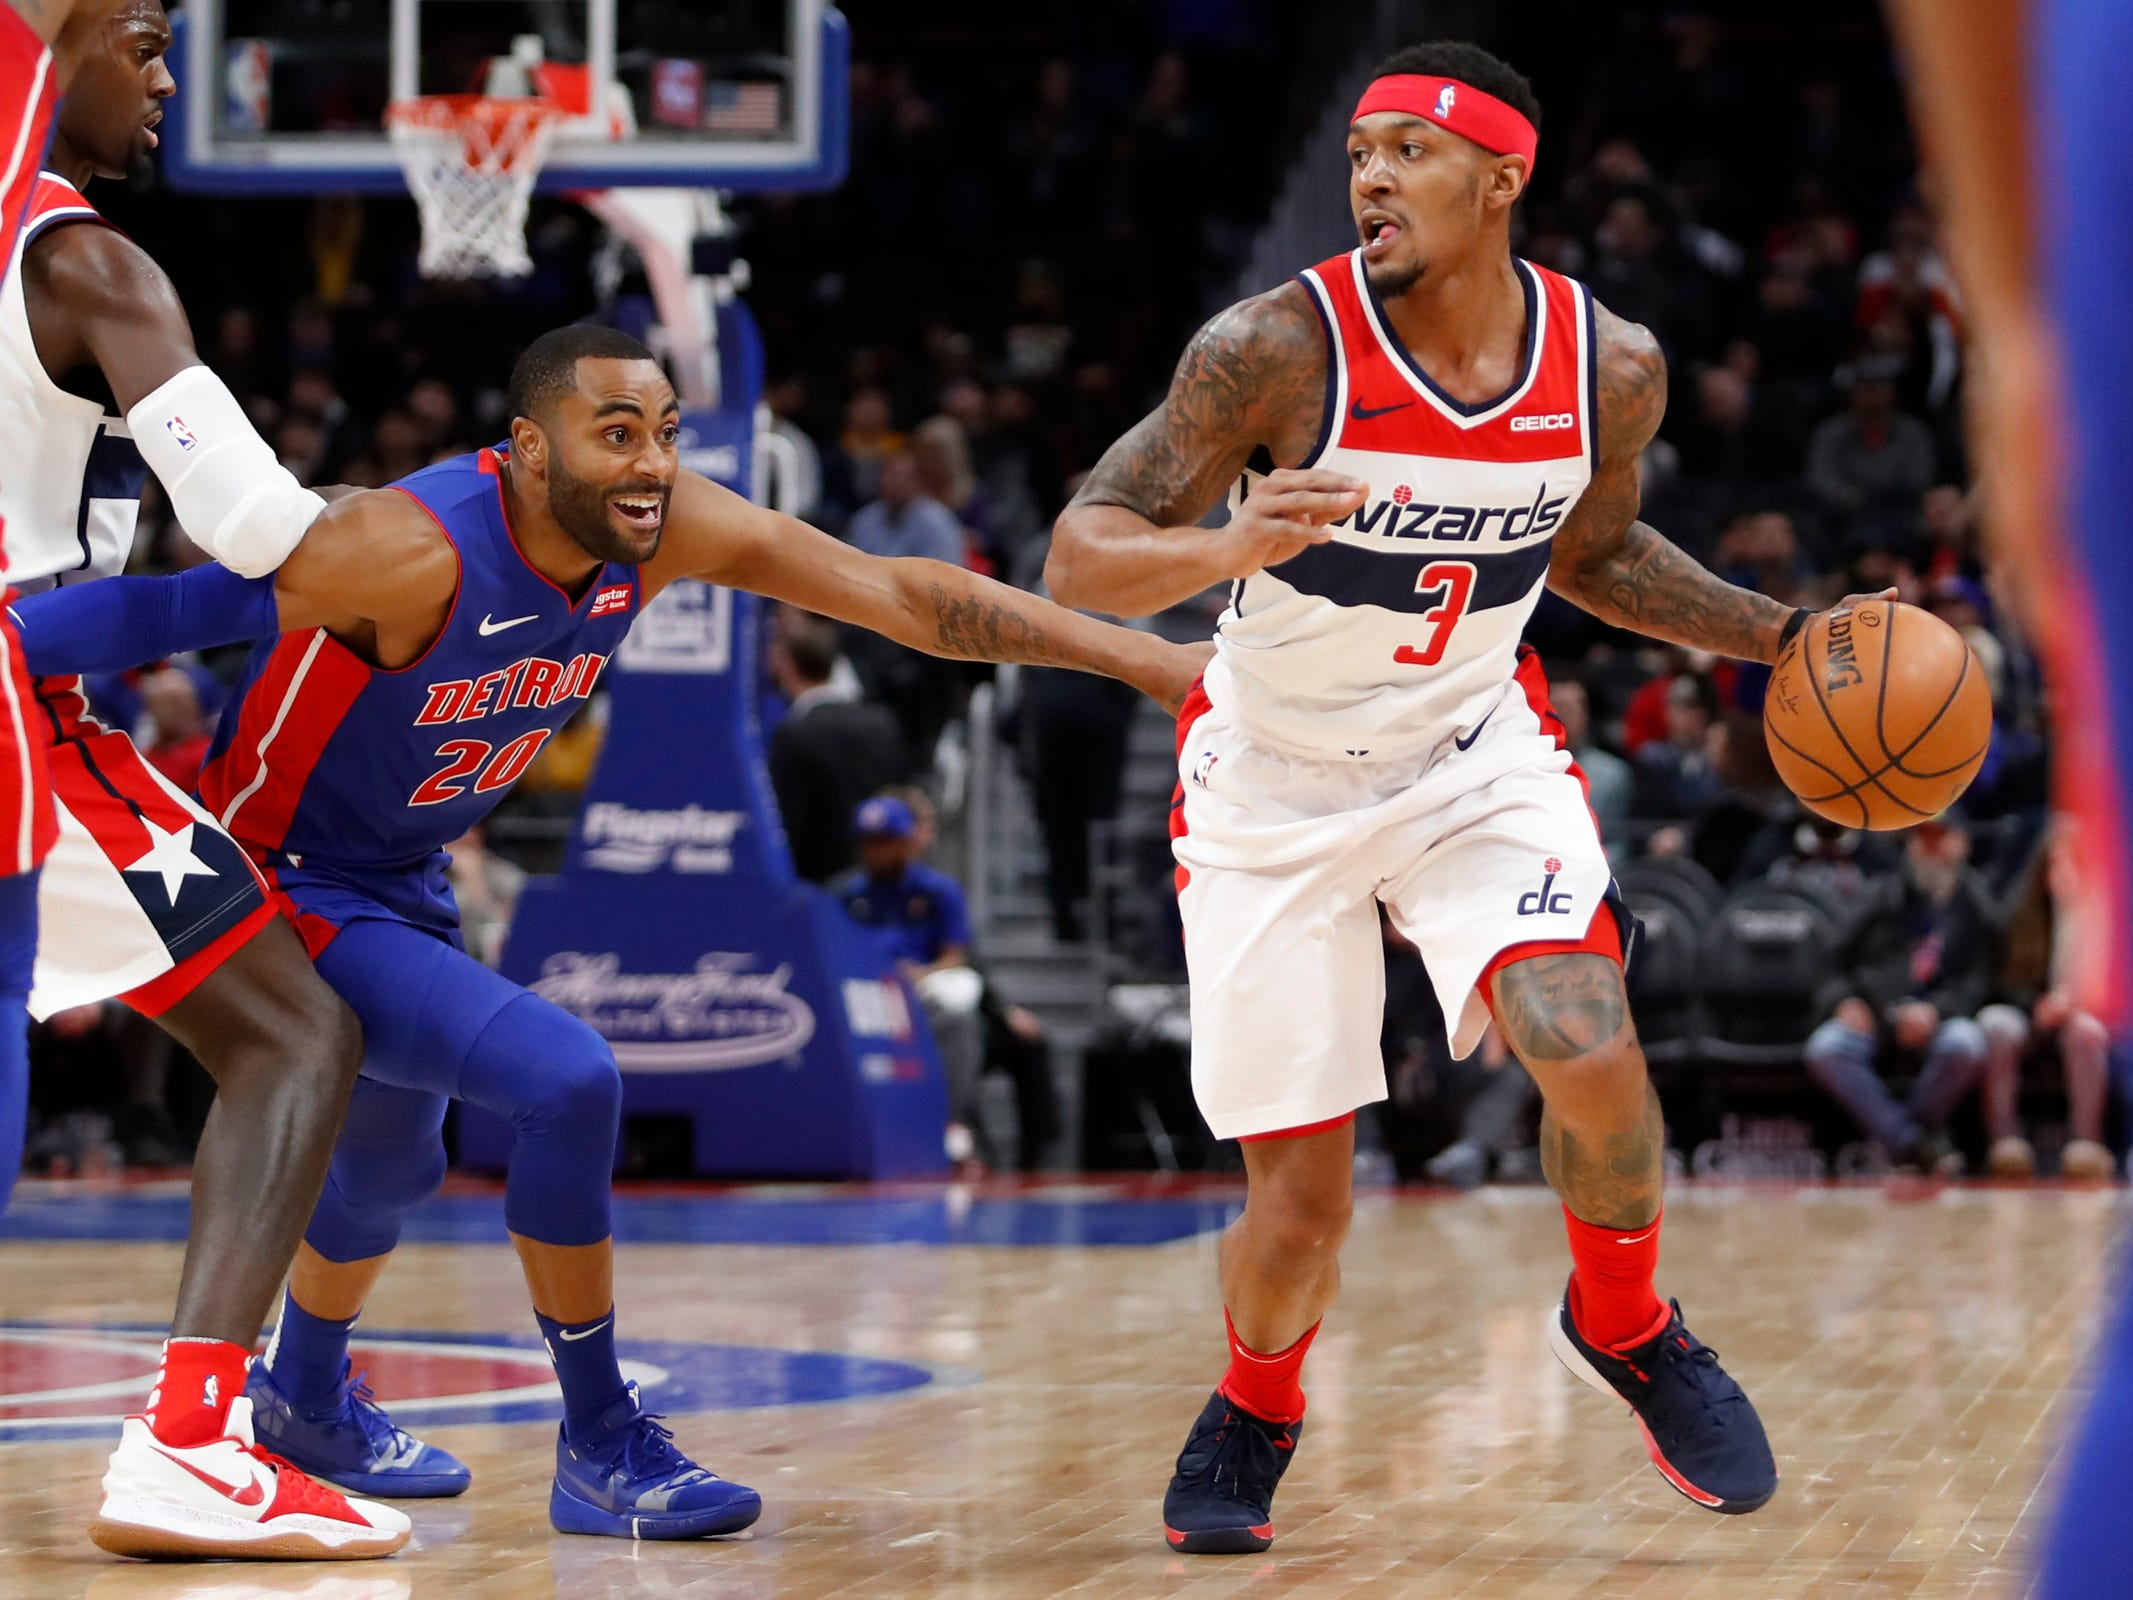 FWashington Wizards guard Bradley Beal handles the ball while defended by Detroit Pistons guard Wayne Ellington during the first quarter at Little Caesars Arena, Feb. 11, 2019.